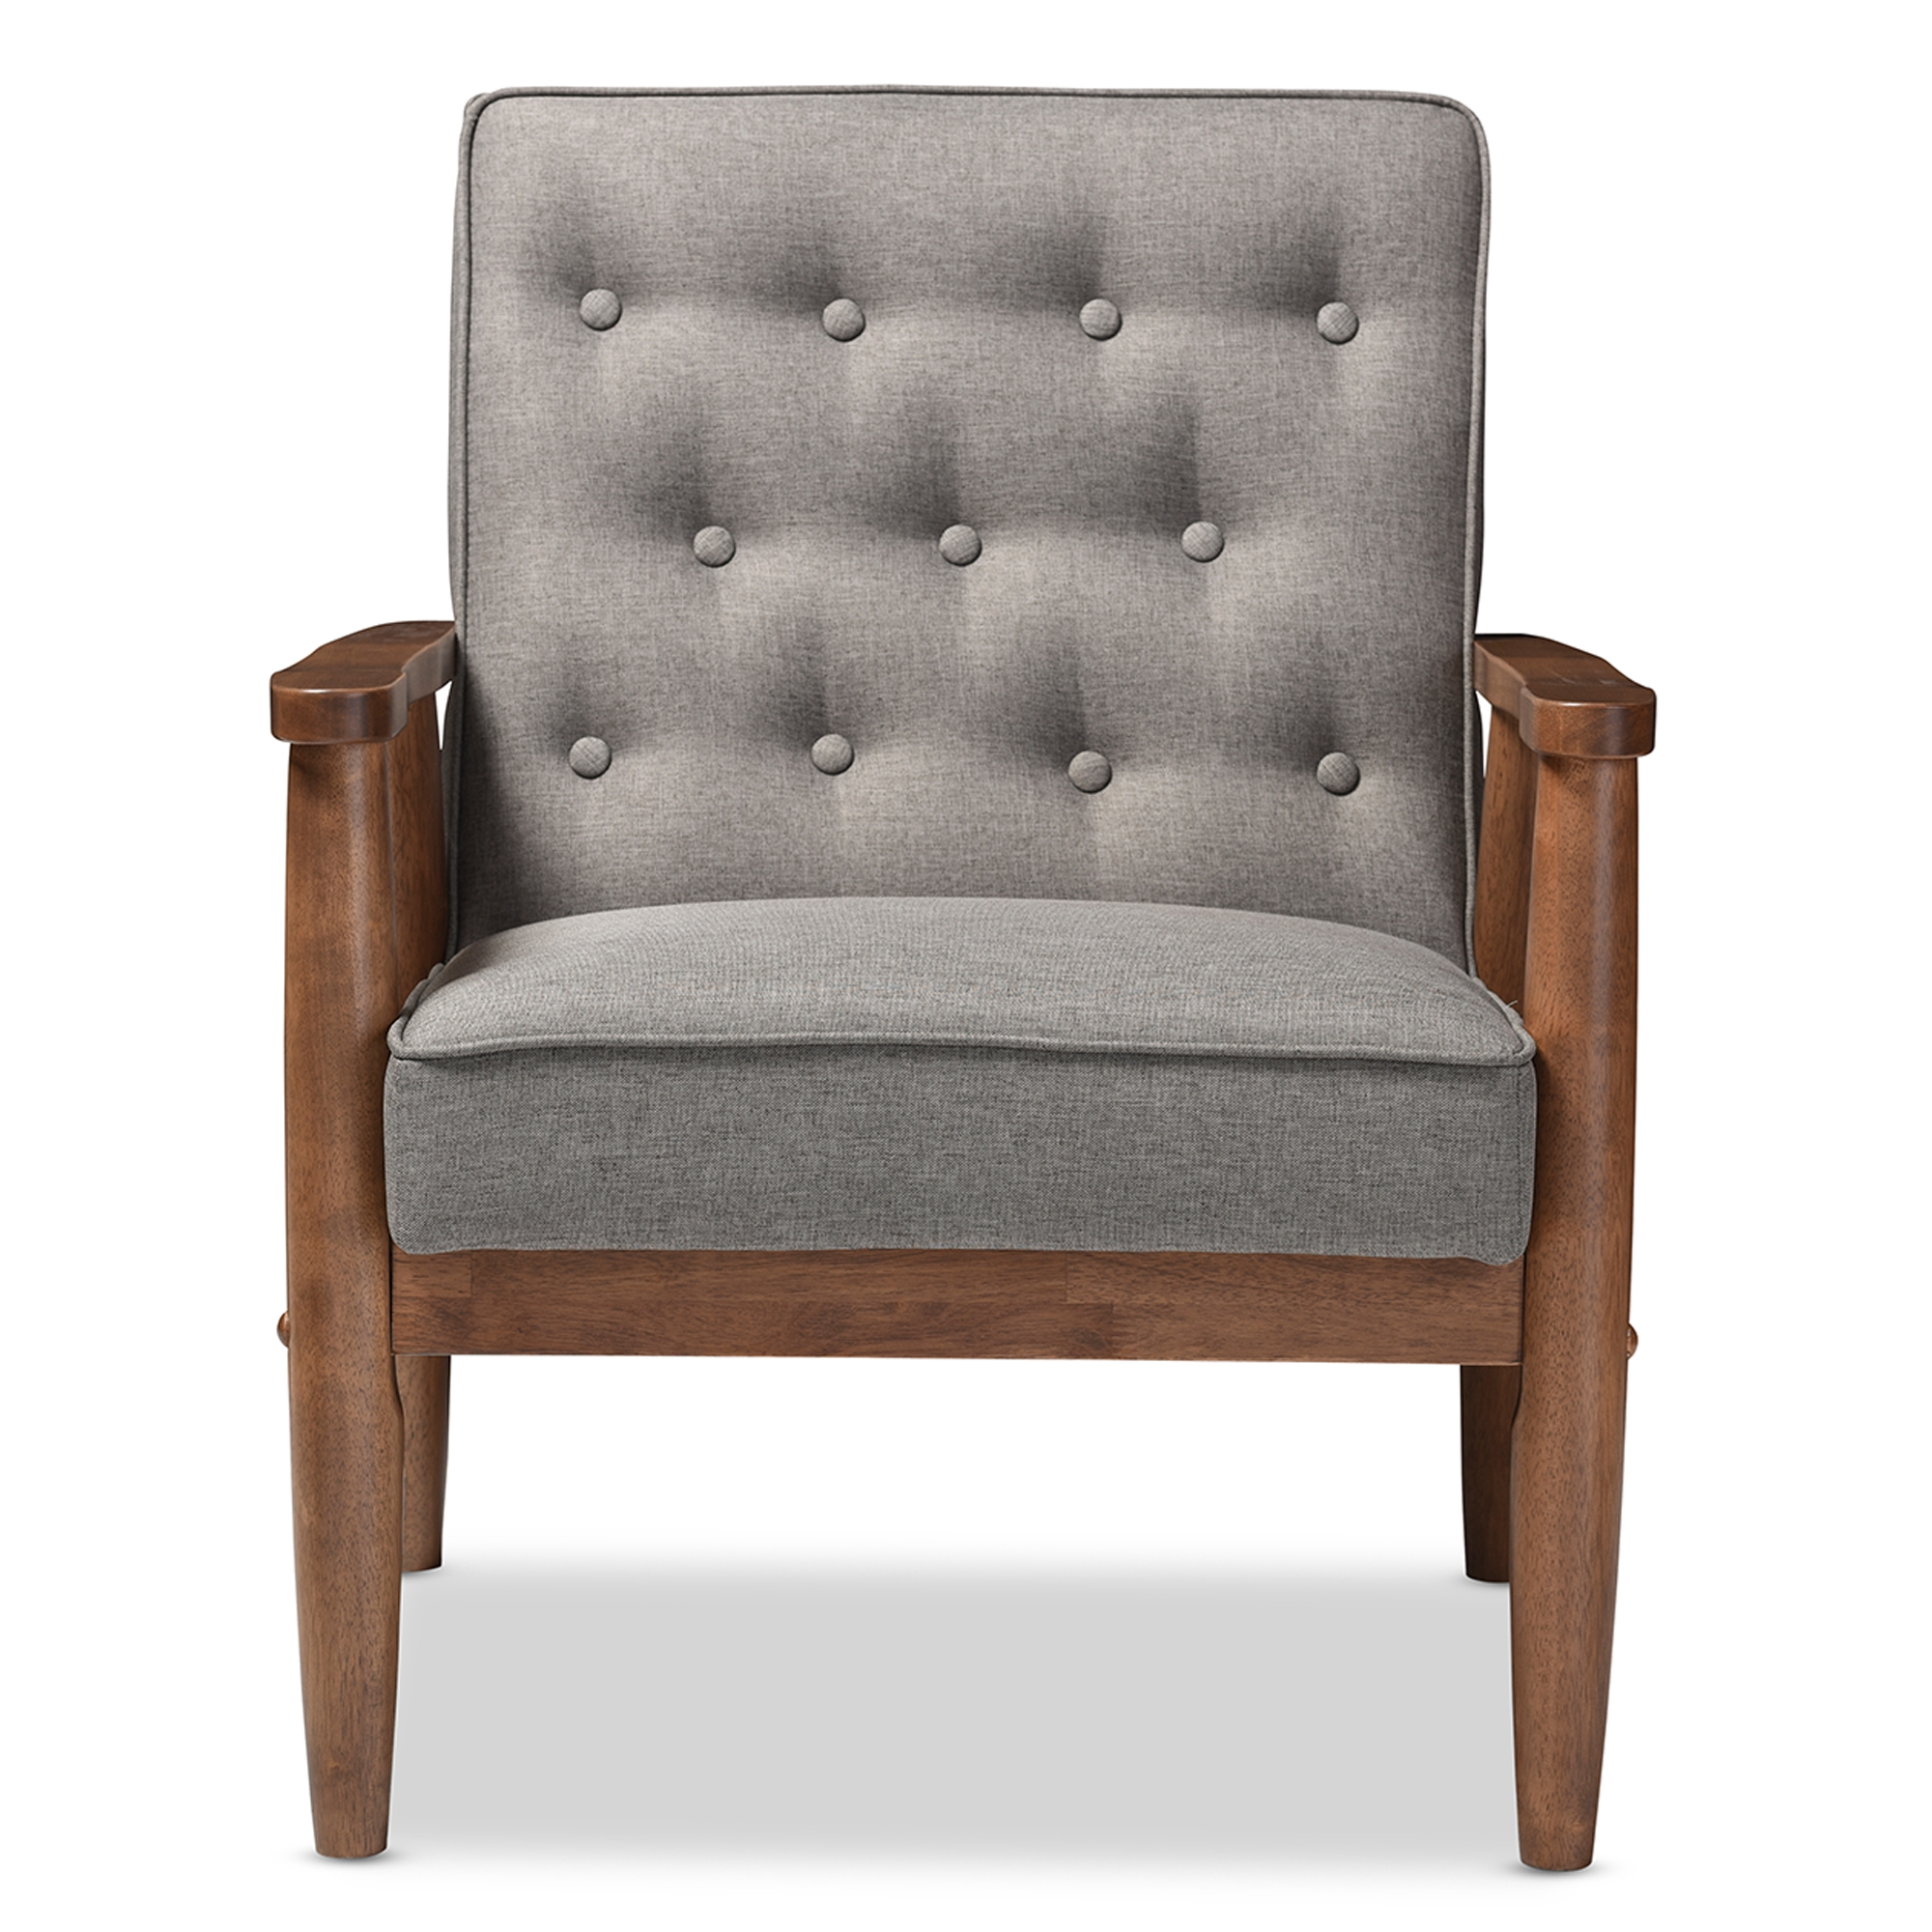 Baxton Studio | Wholesale Accent Chair | Wholesale Living Room Furniture |  Wholesale Furniture